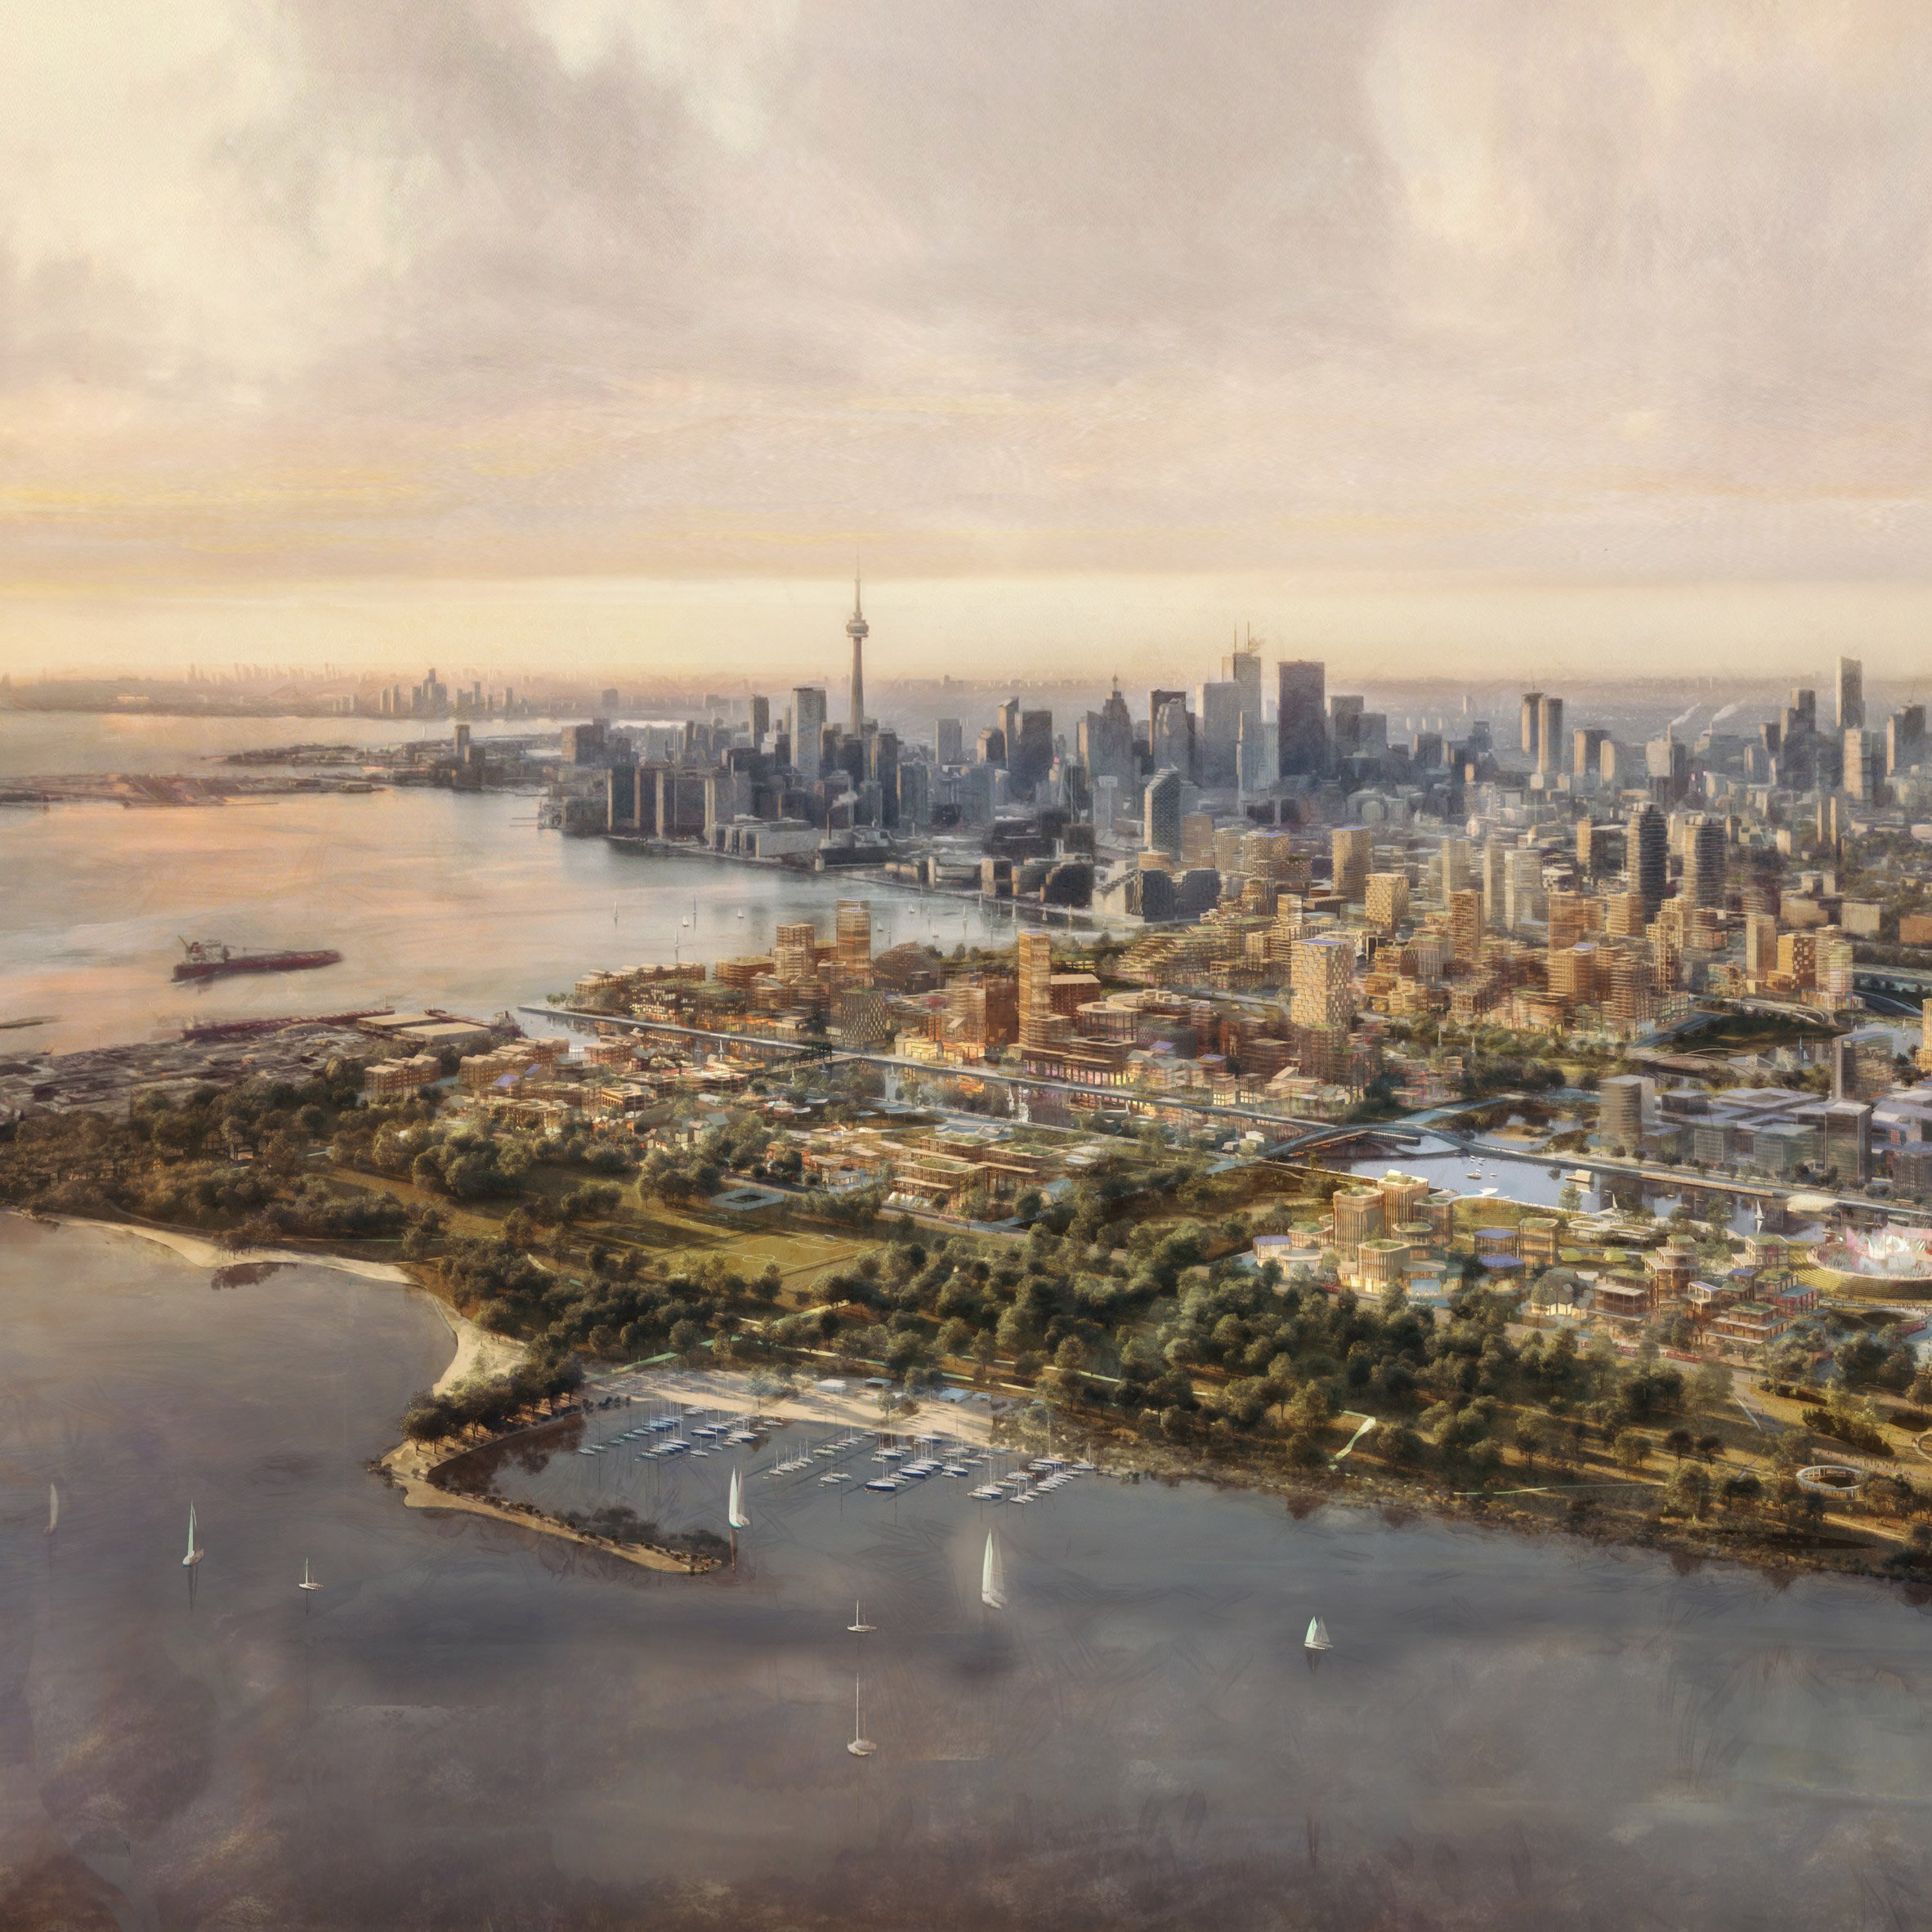 Toronto Tomorrow by Sidewalk Labs